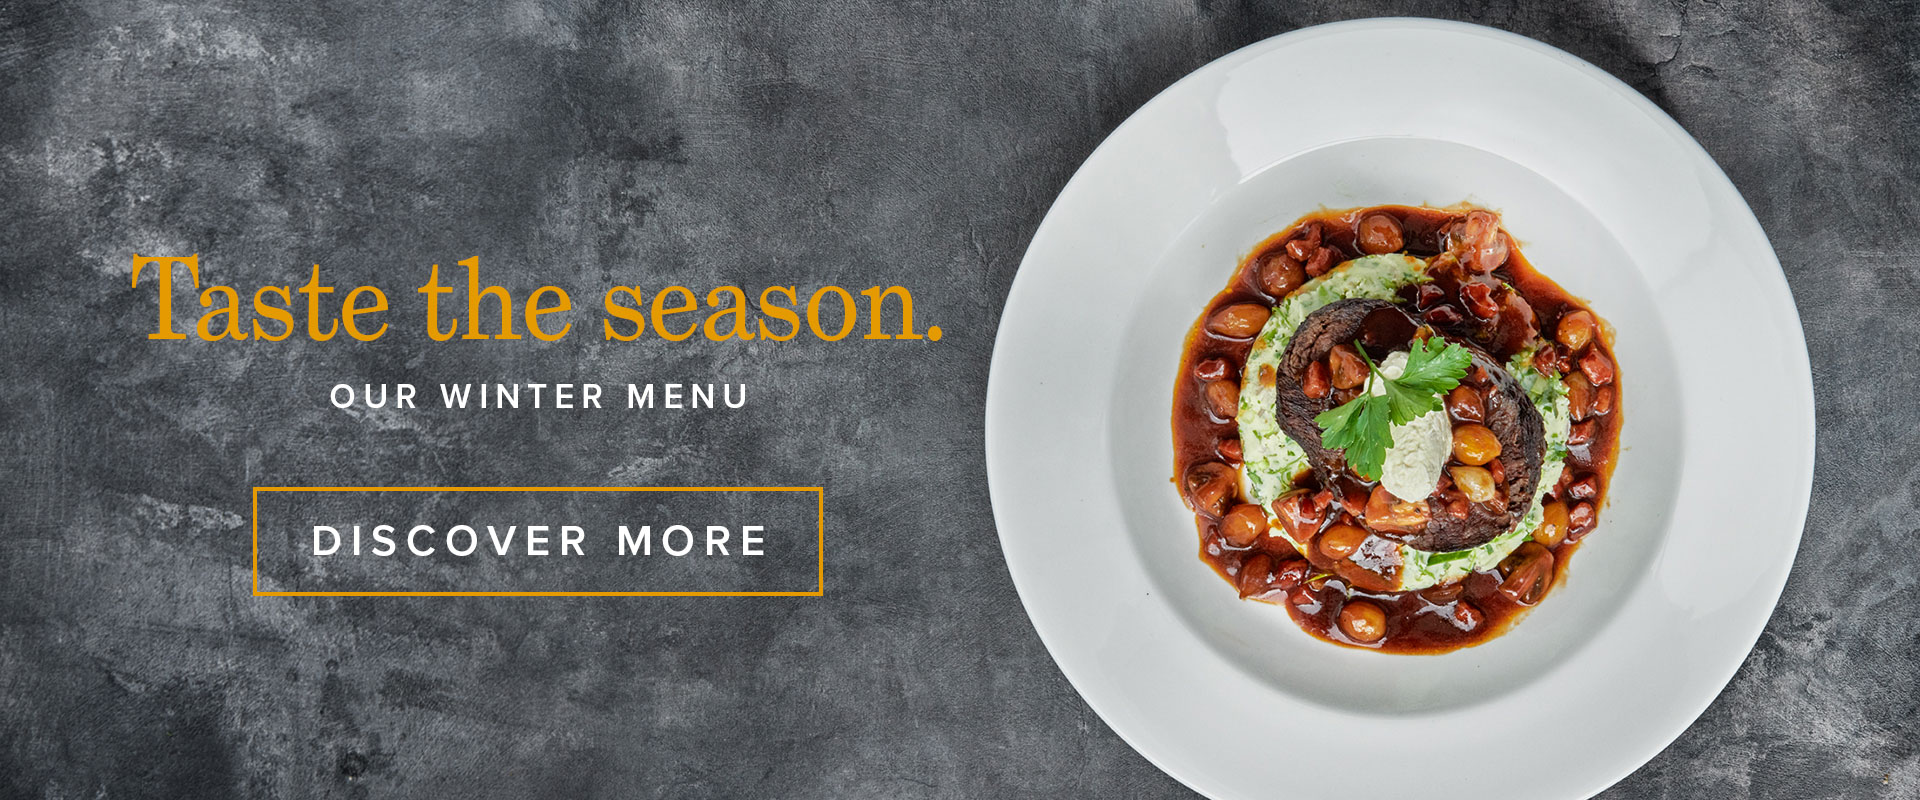 Taste The Season at Browns Liverpool